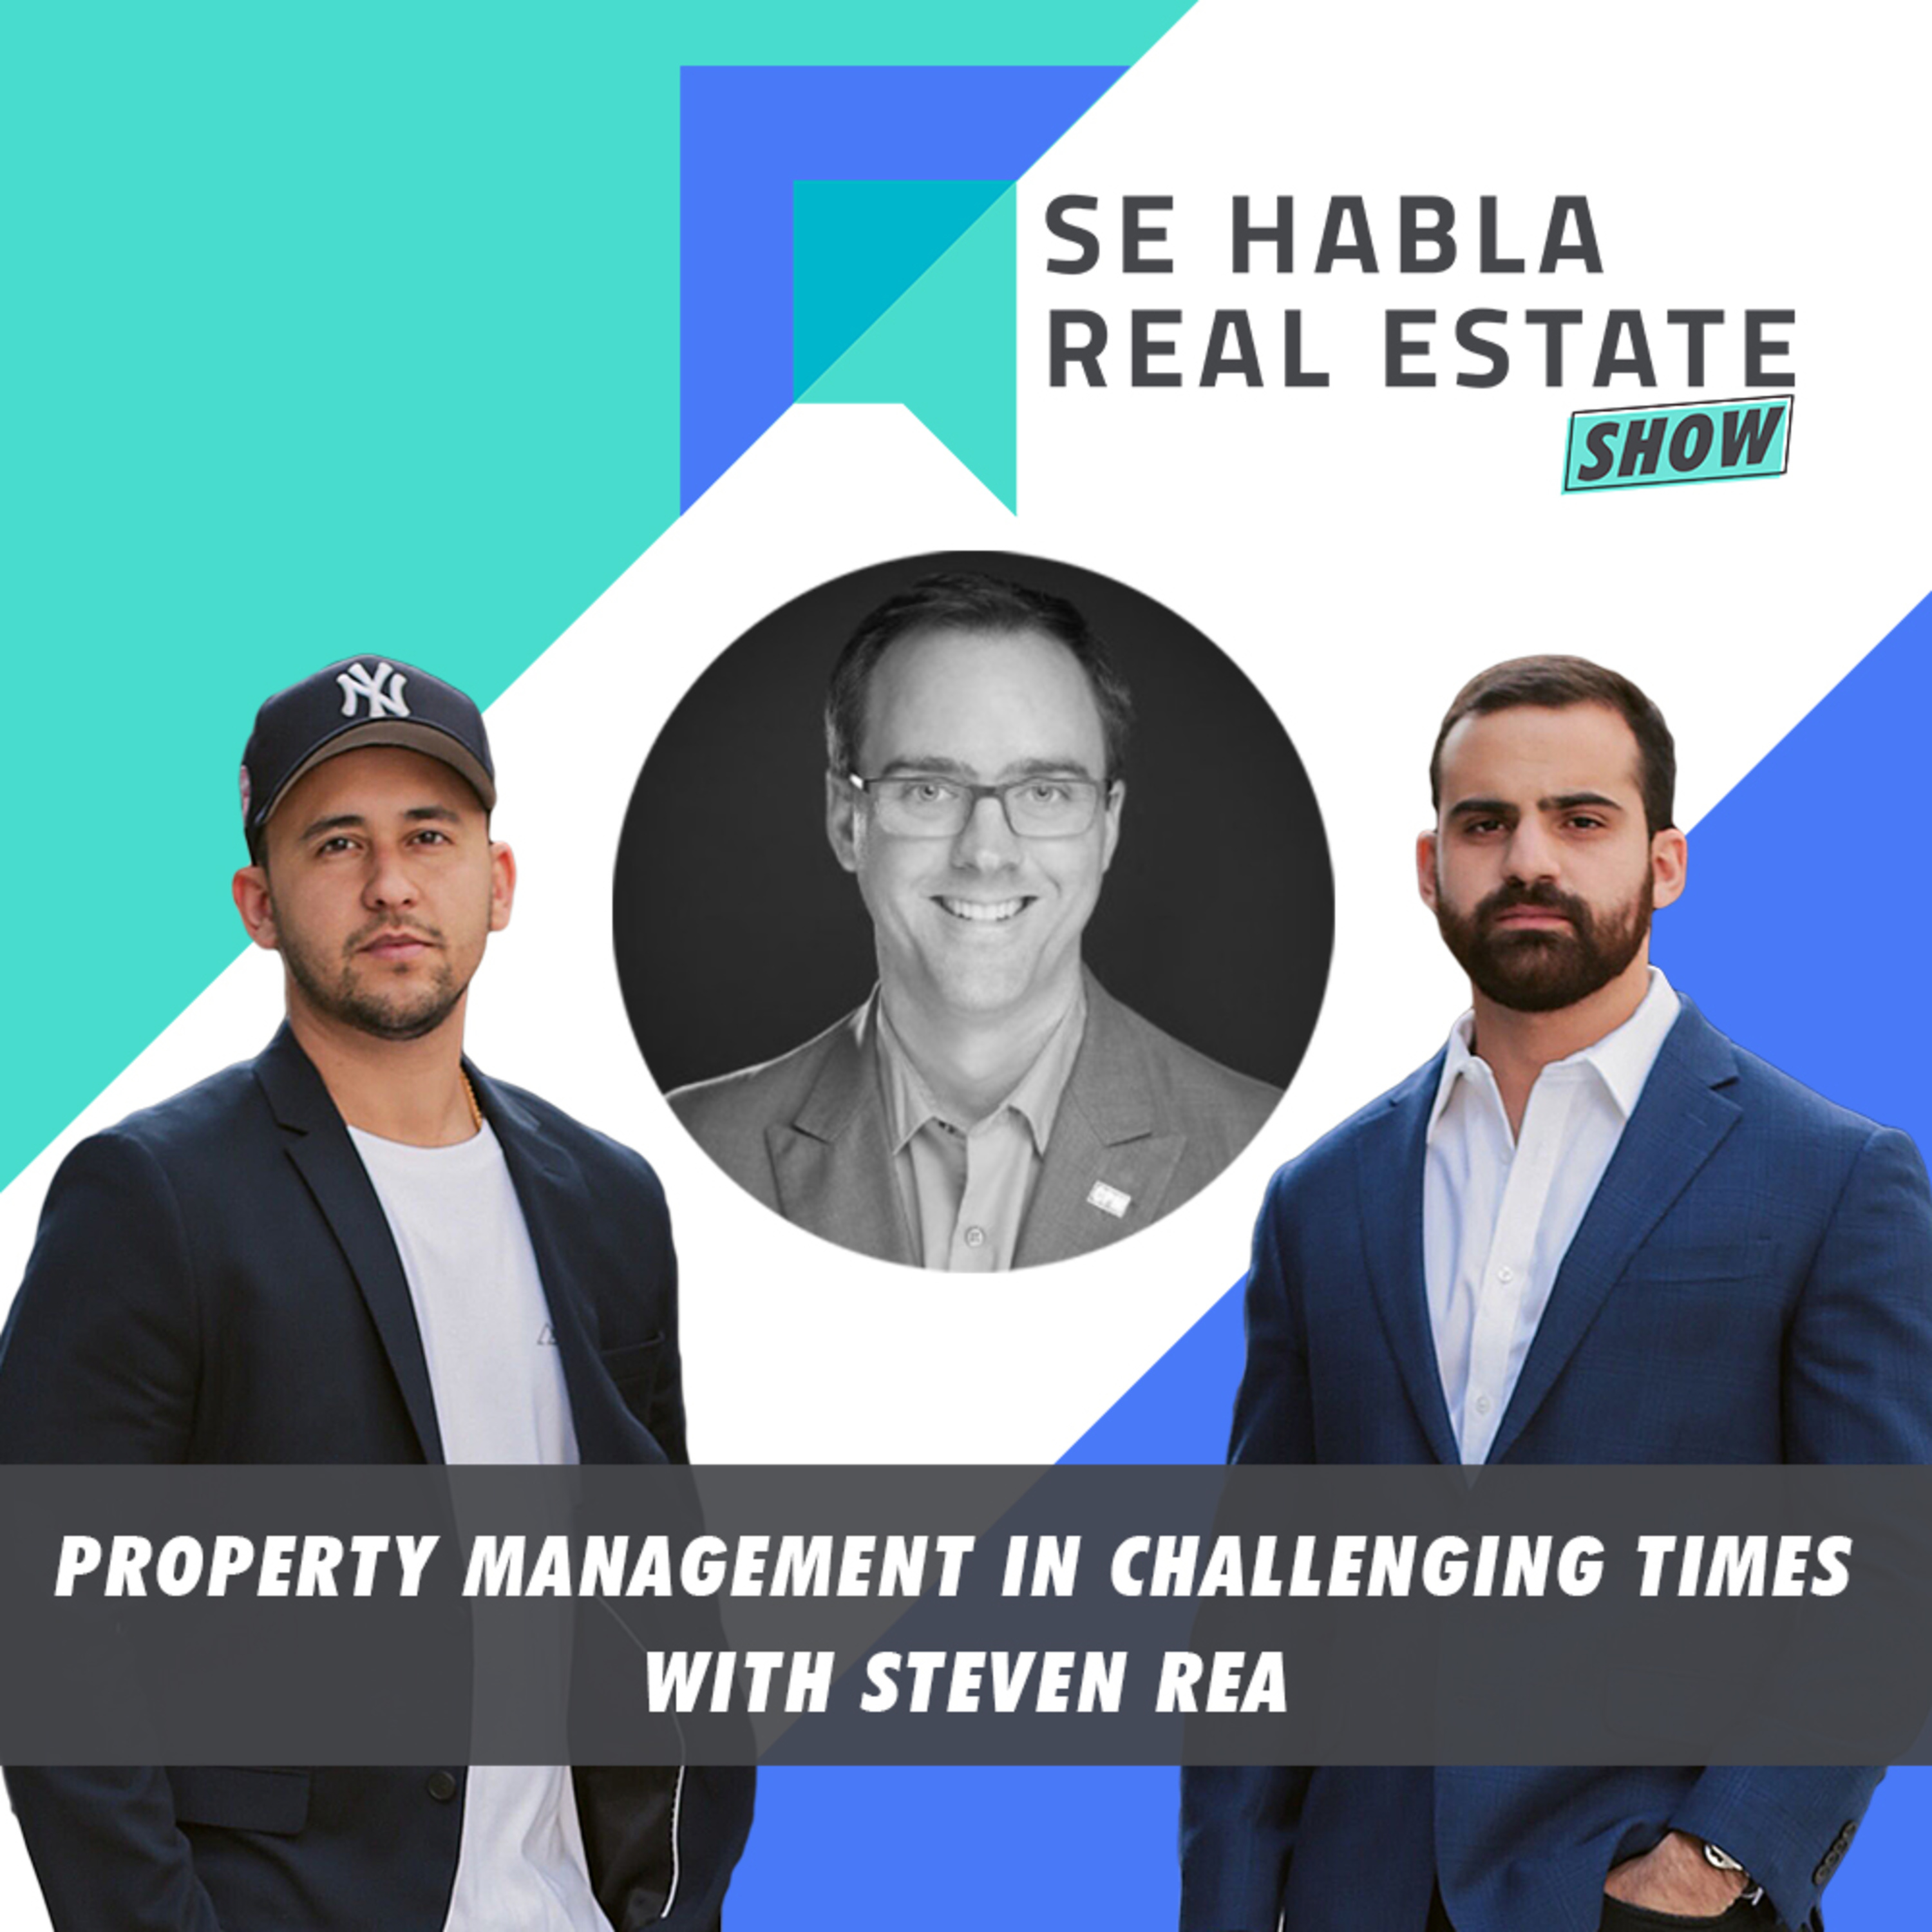 096 - SHRE: Property Management in Challenging Times with Steven Rea